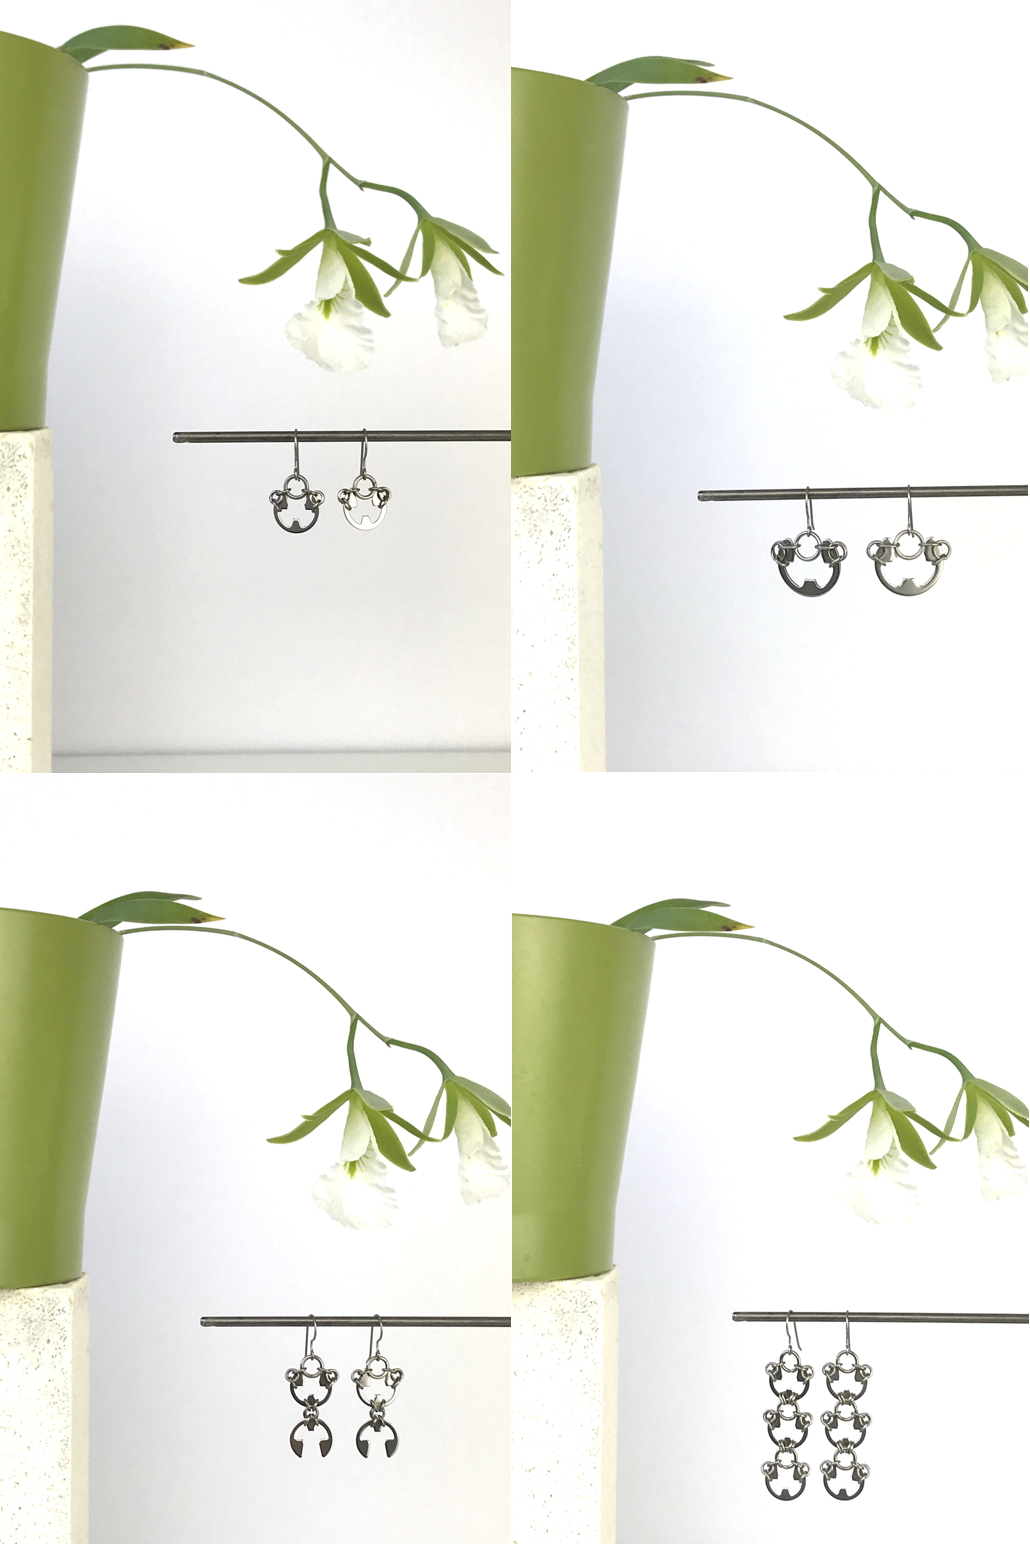 Compiled image of 4 photos featuring Wraptillion's Small and Large Poppy Earrings, Scarab Earrings, and Lotus Earrings with blooming orchid Encyclia mariae in a green cachepot.